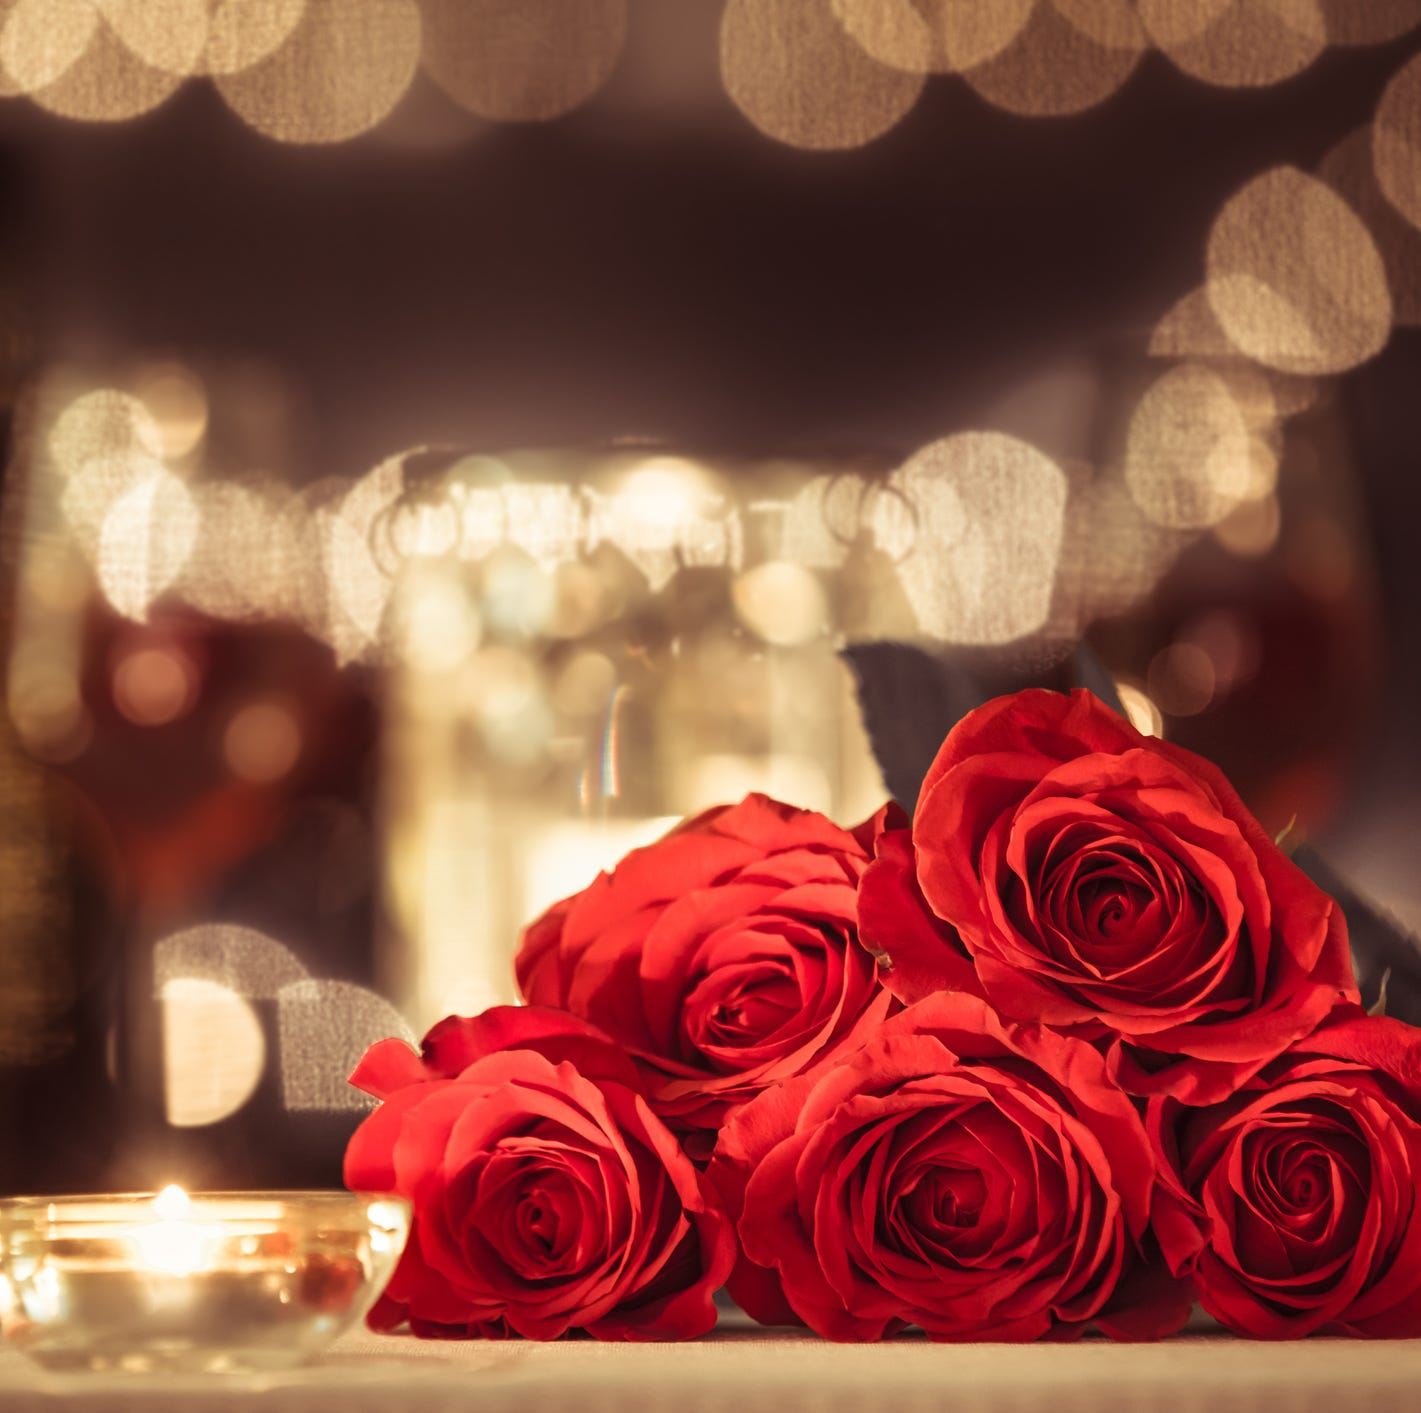 Date ideas for Valentine's Day in Stevens Point: We have you covered.